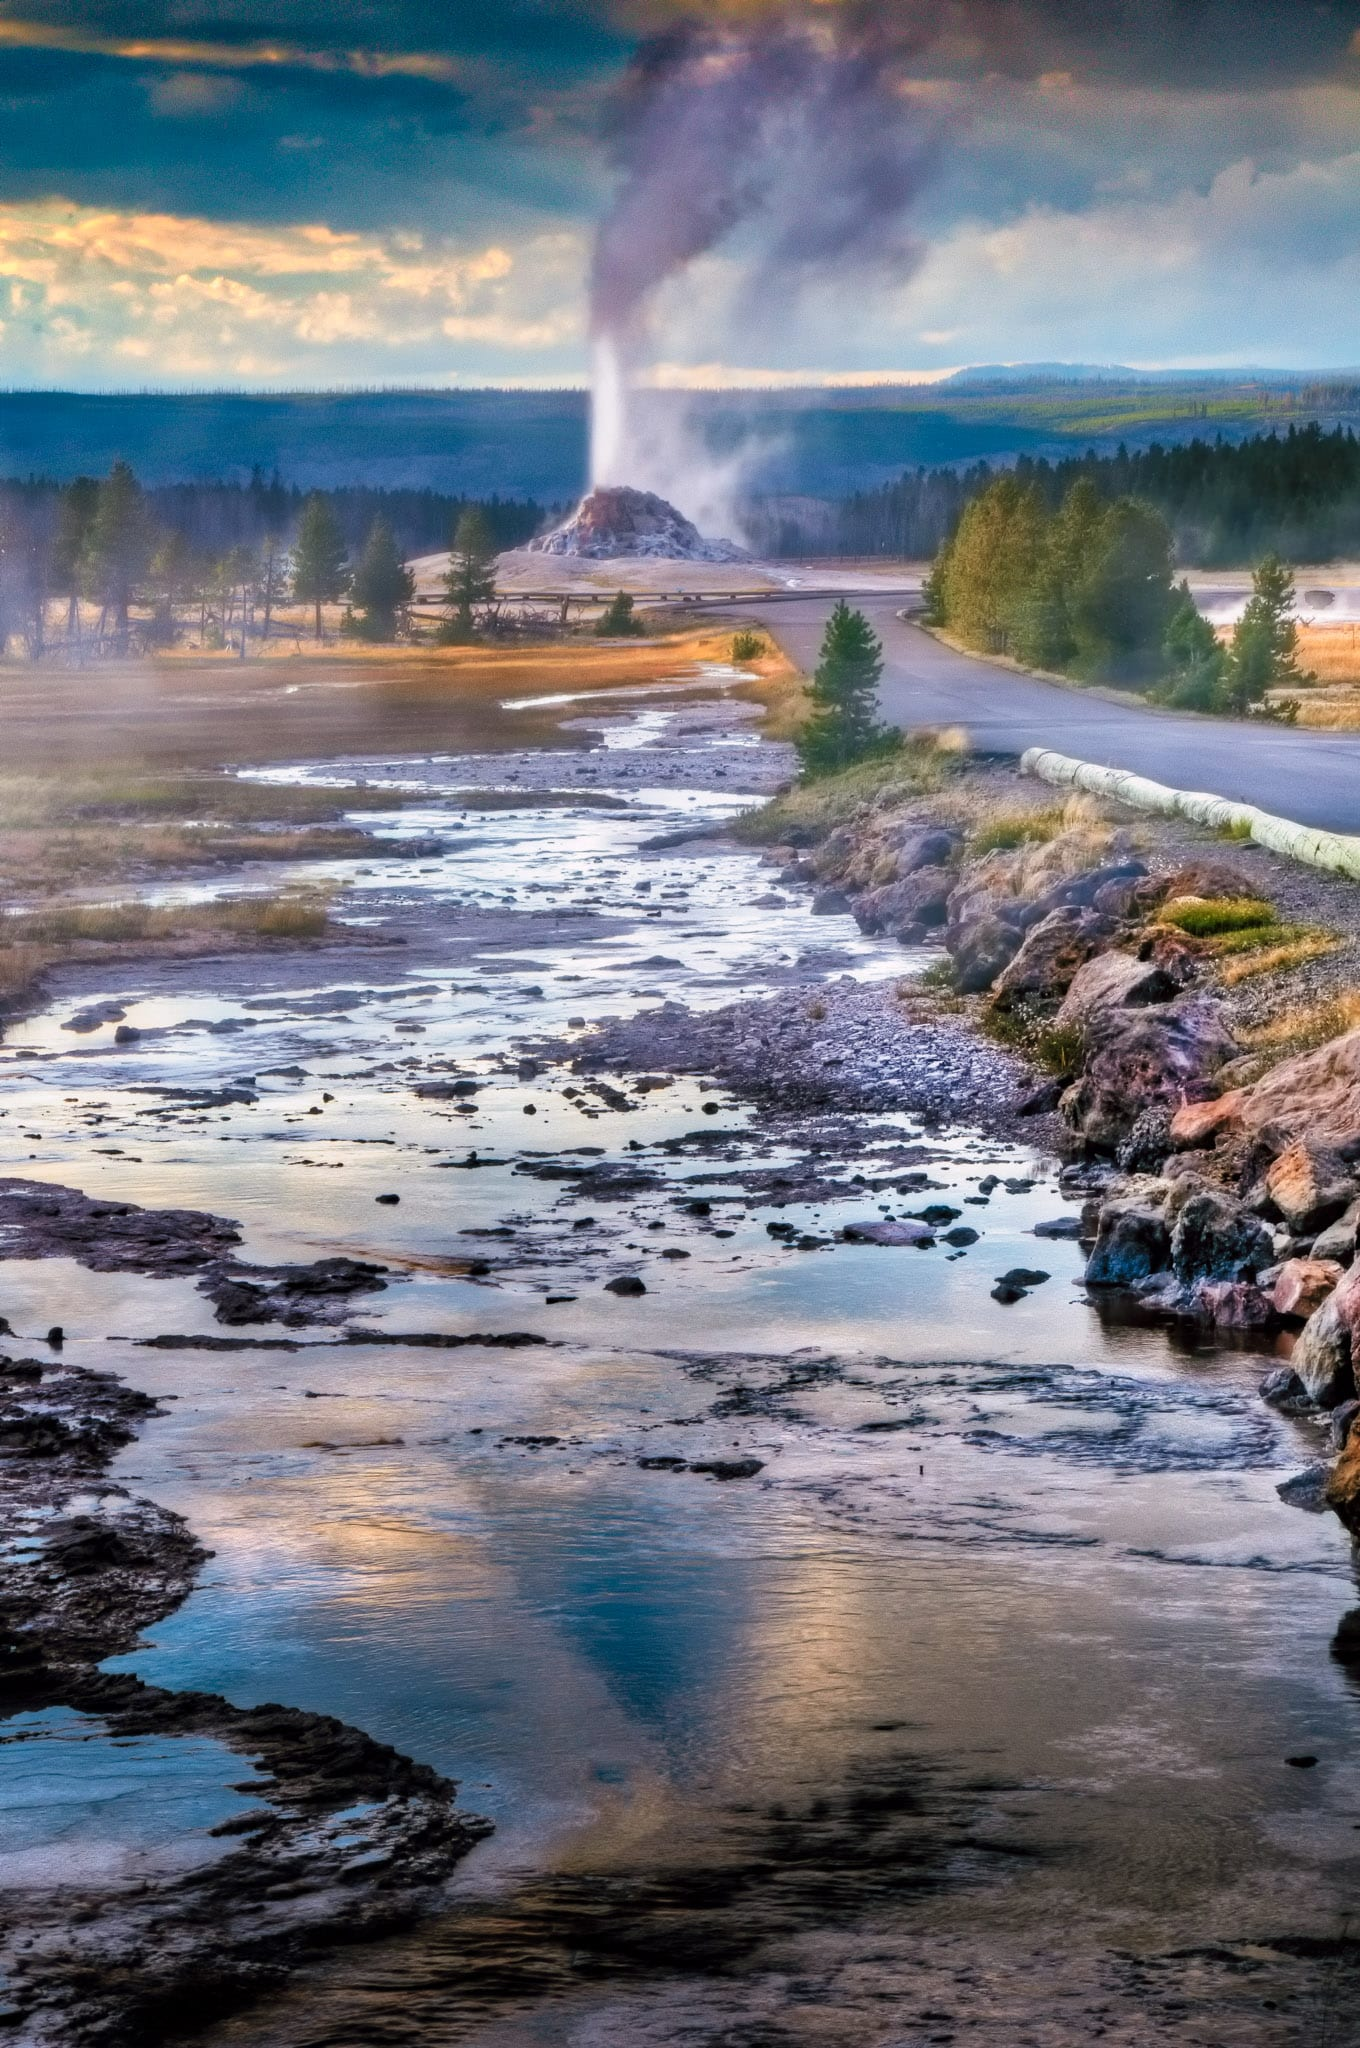 Runoff from Great Fountain Geyser heads to erupting White Dome Geyser in Yellowstone National Park, Wyoming.